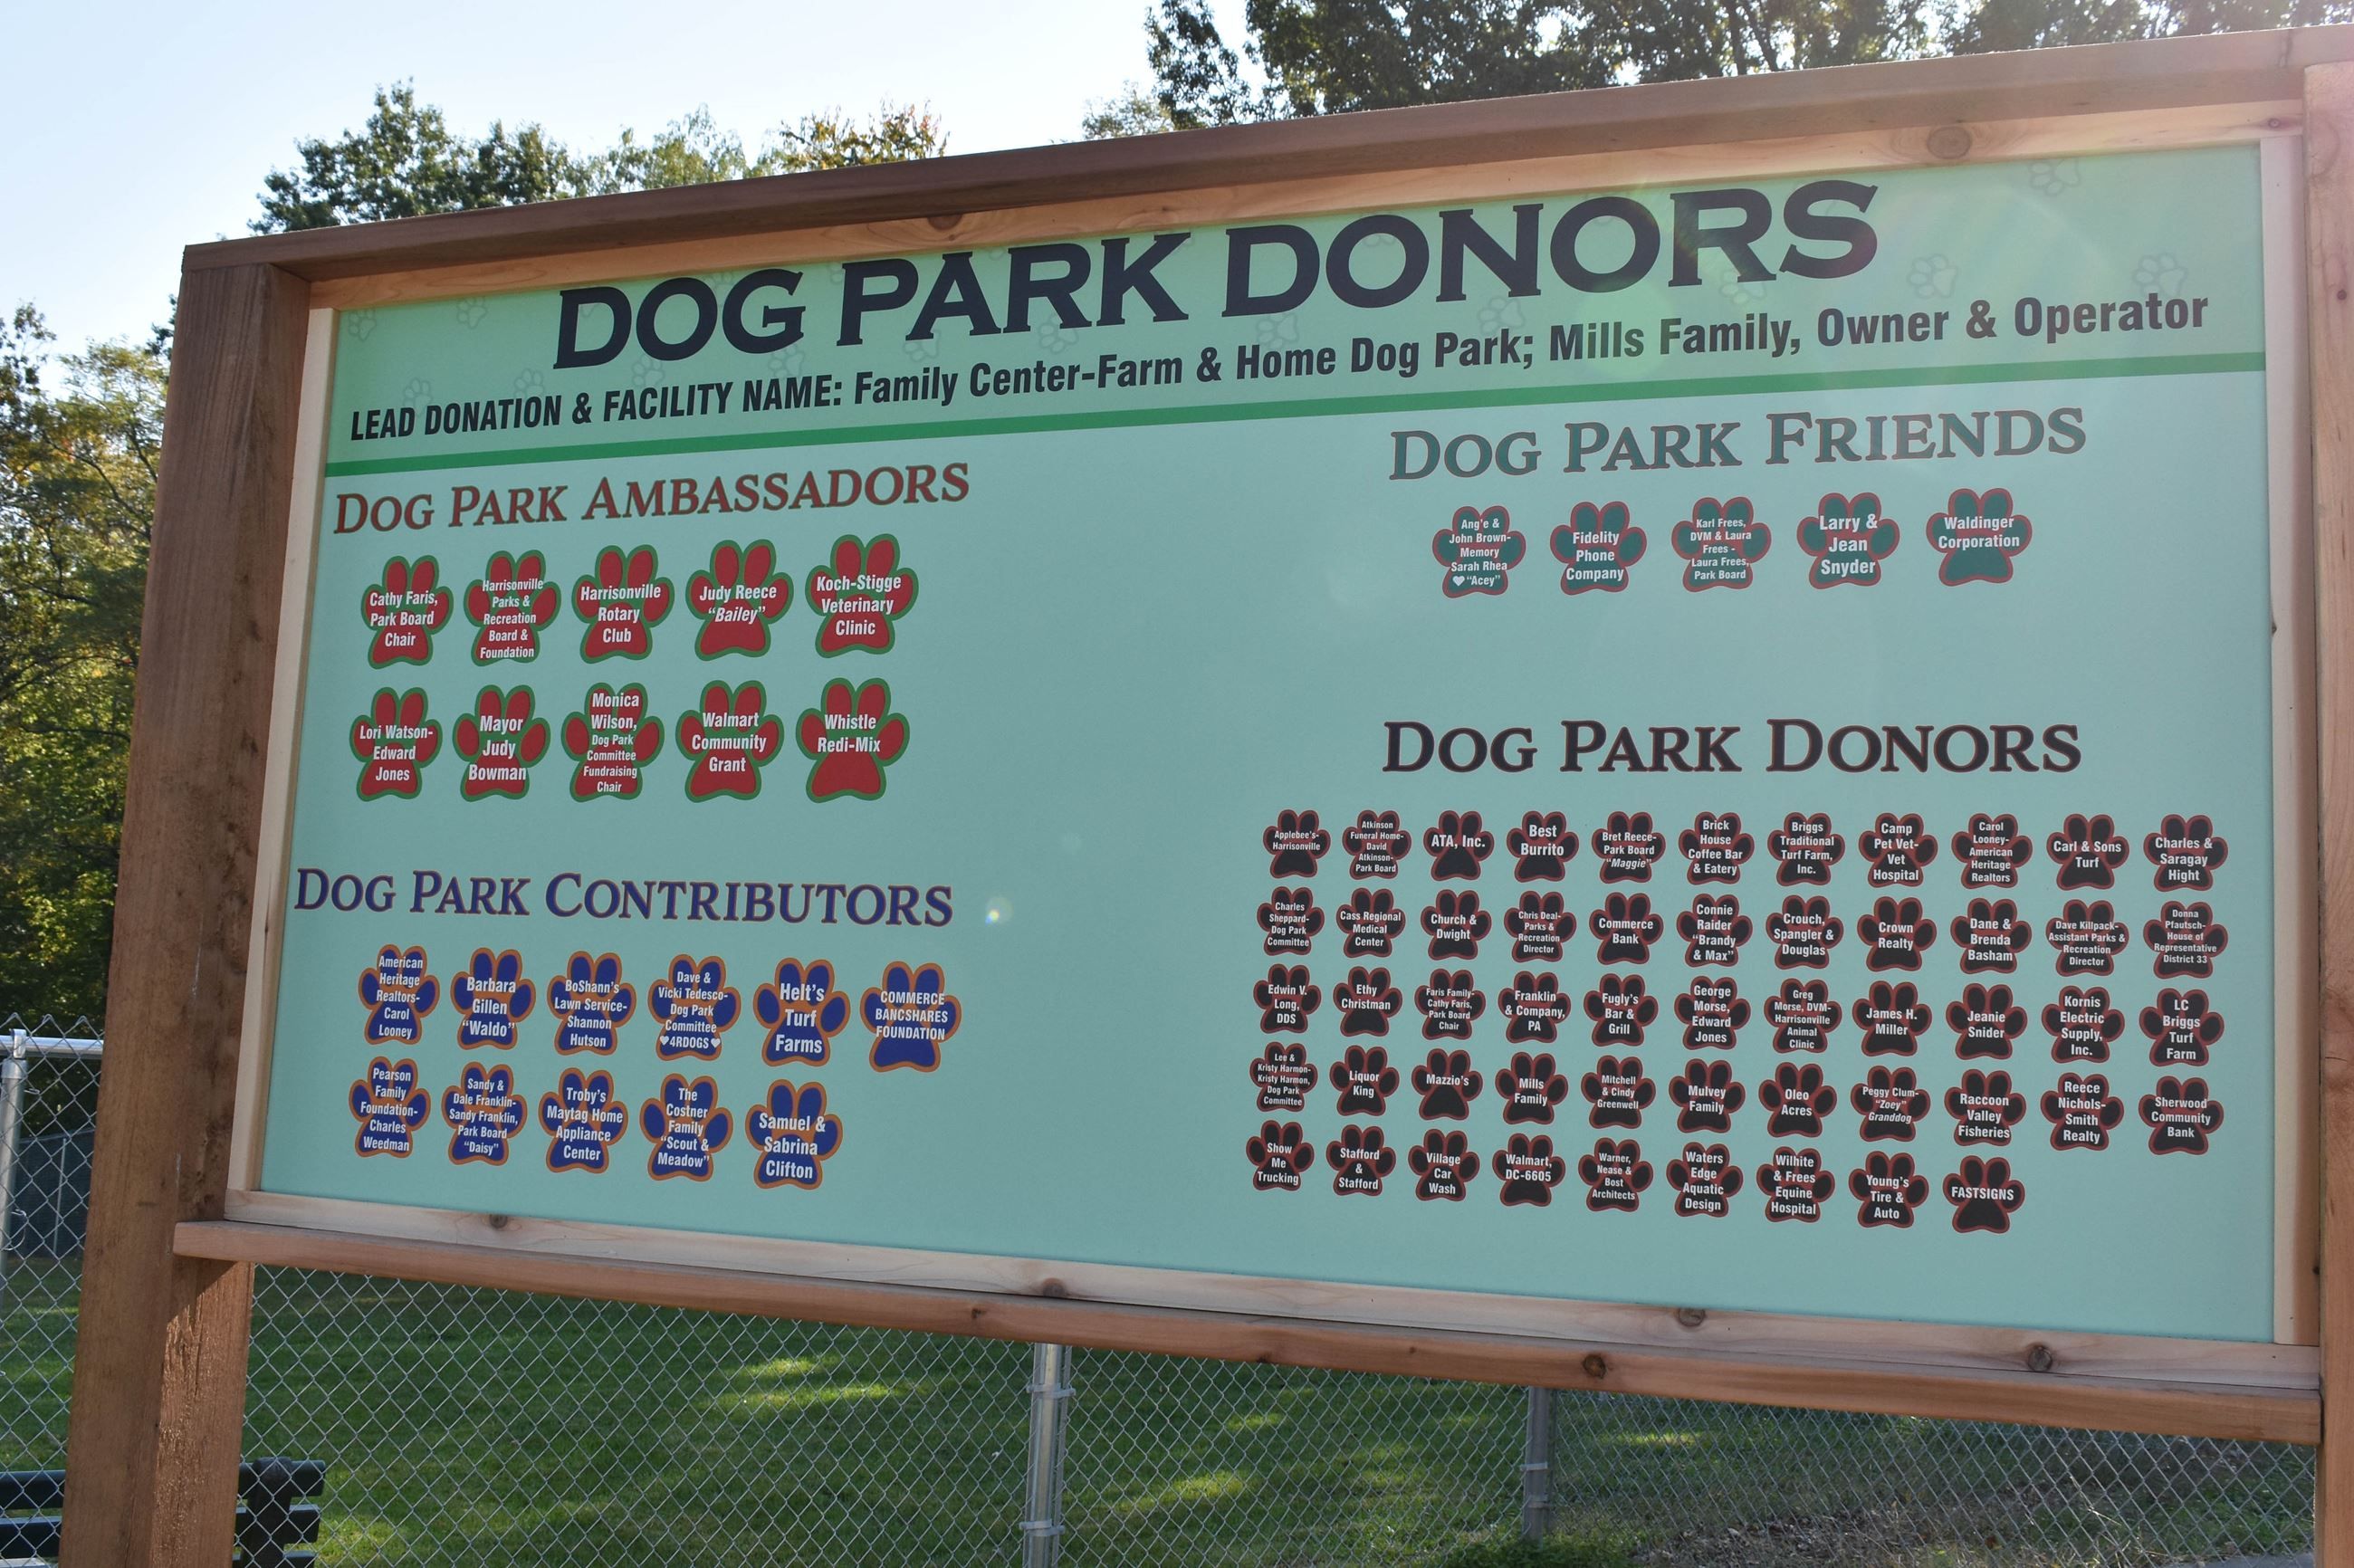 Dog Park donor recognition